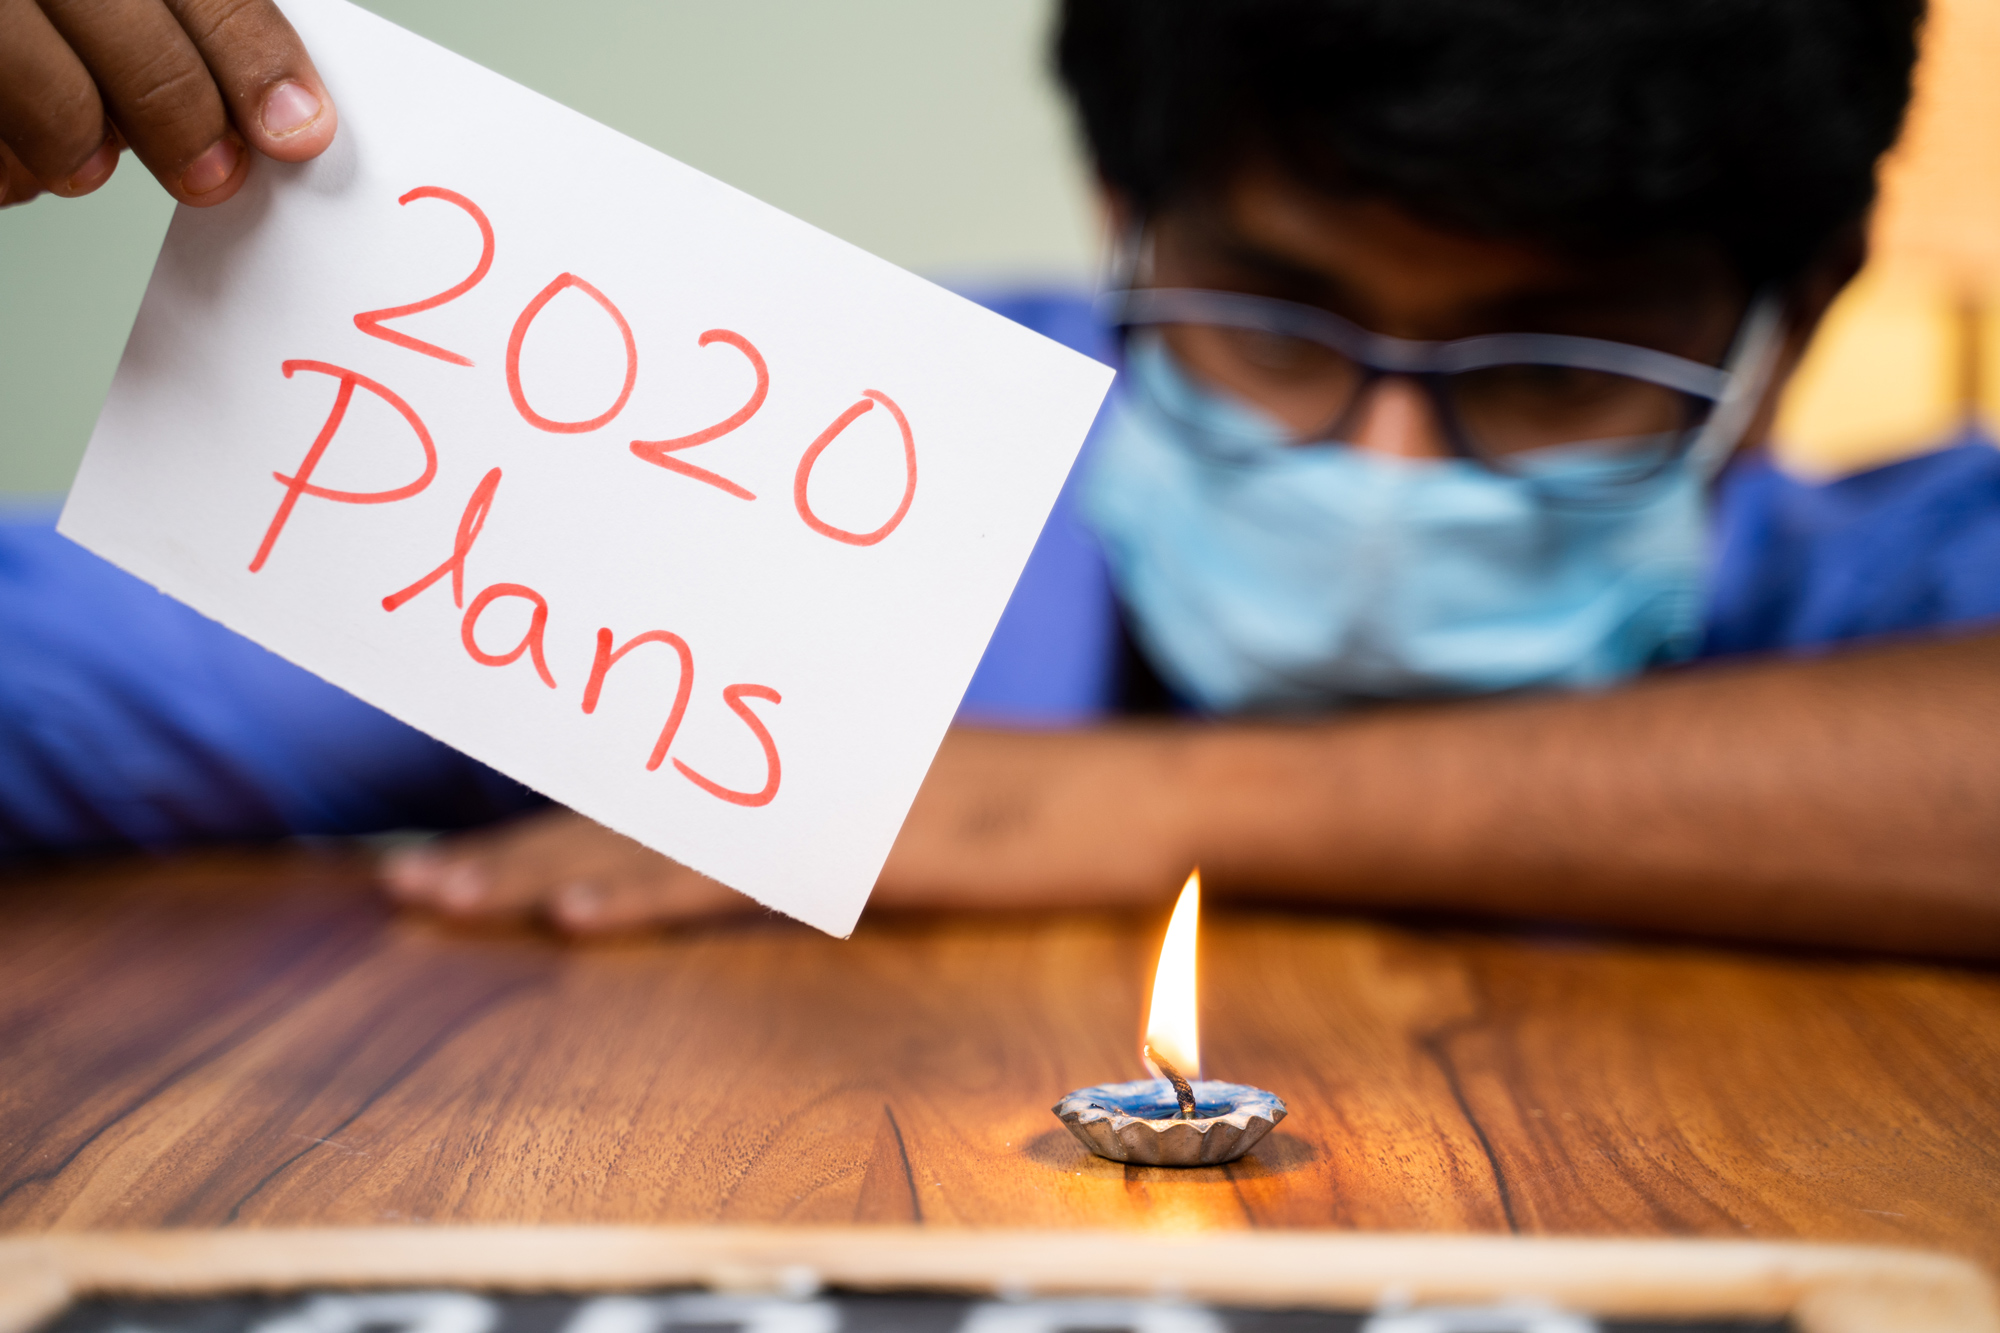 2020 predictions: What we got right and what we got wrong